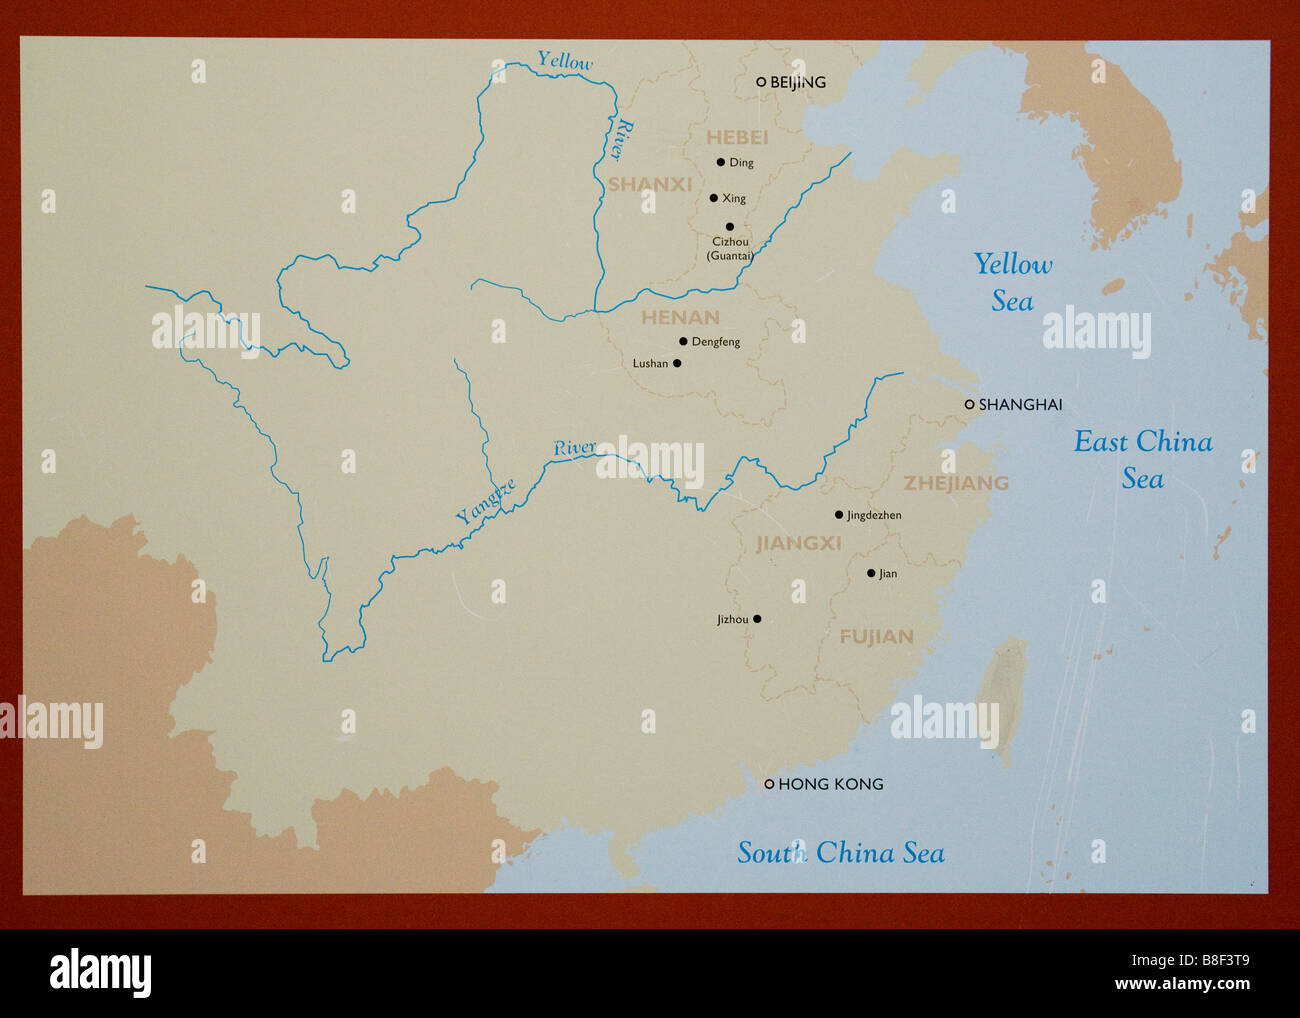 Rivers Map Of China.Map Of China Rivers Stock Photos Map Of China Rivers Stock Images